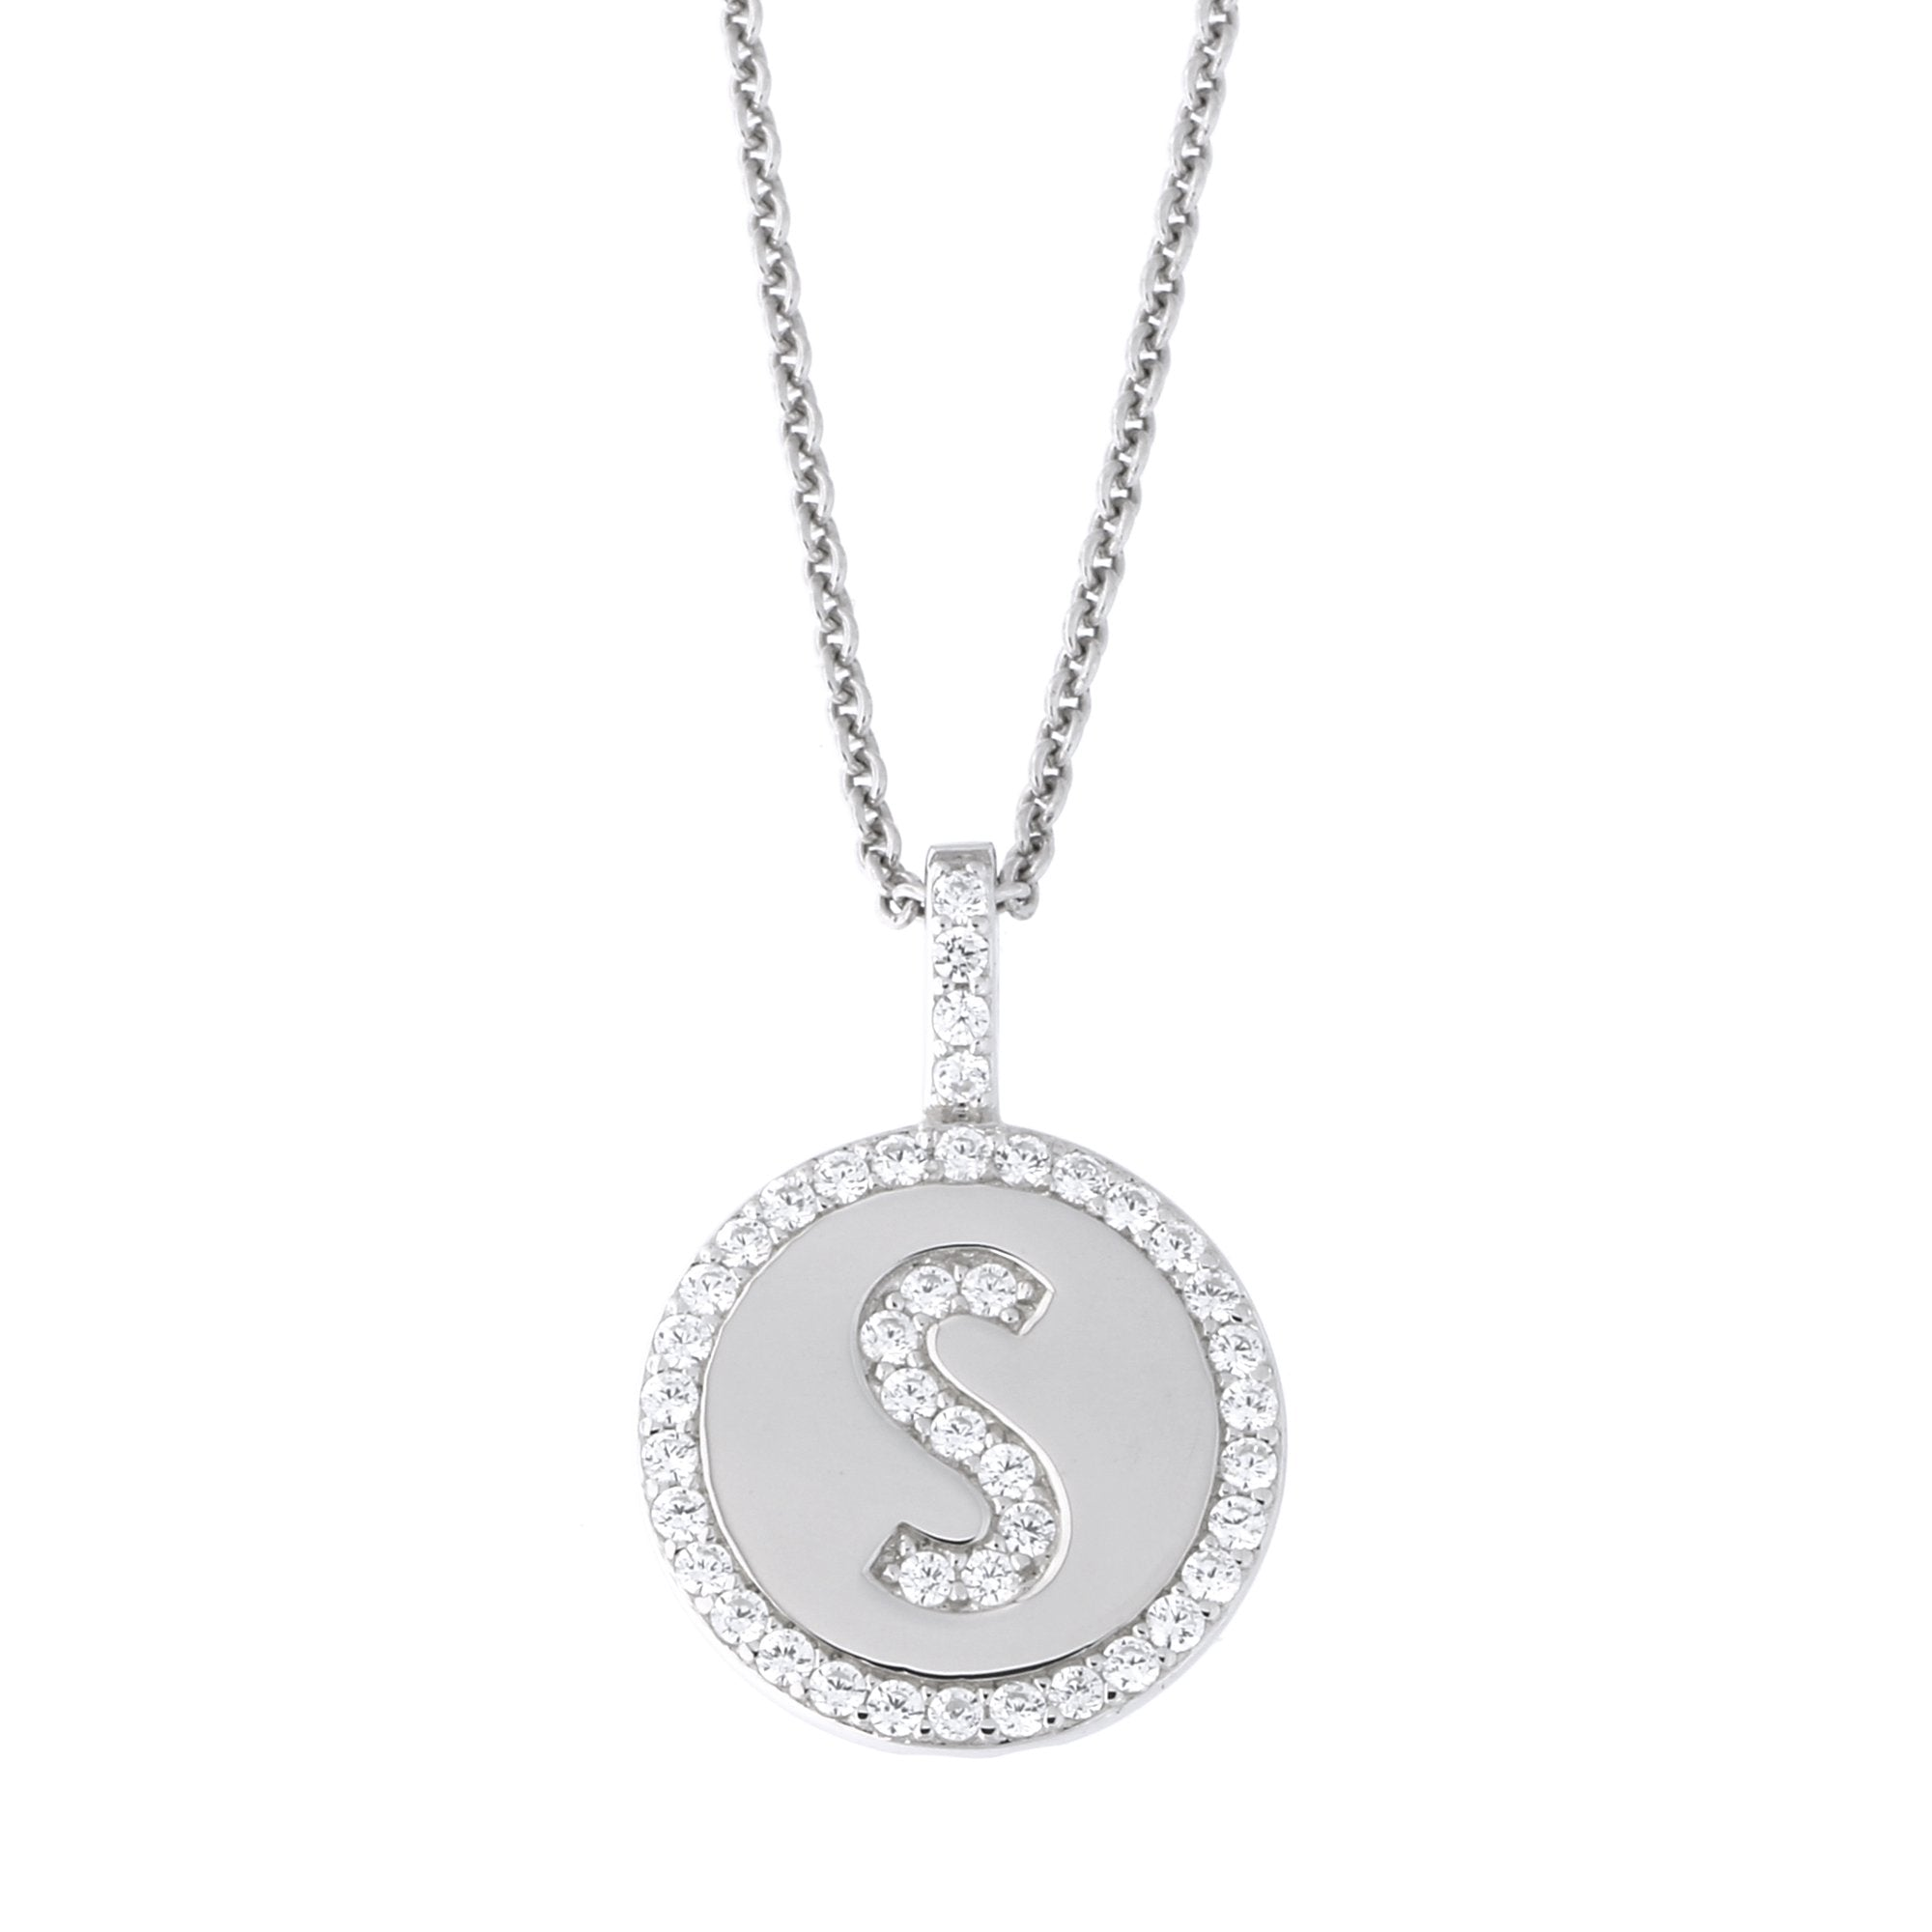 ccf493bb5f373 Solid Sterling Silver Rhodium Plated Cubic Zirconia Initial Disc ...